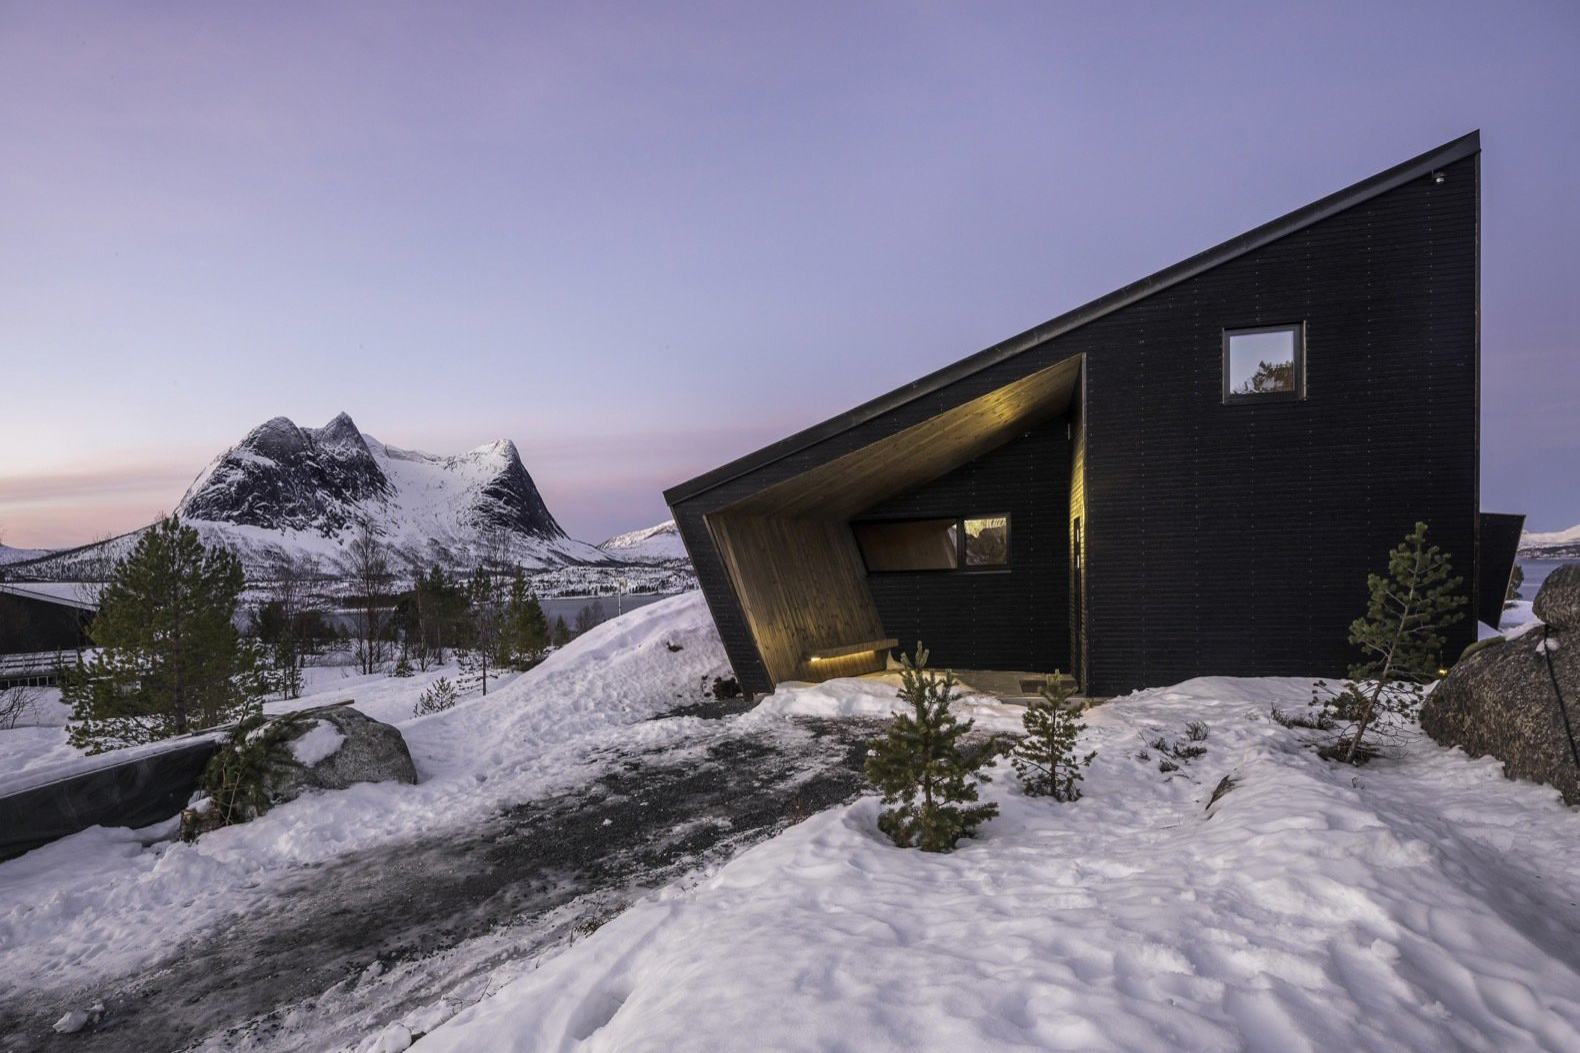 The Efjord Cabin is a Glass Masterpiece - Expedition Portal